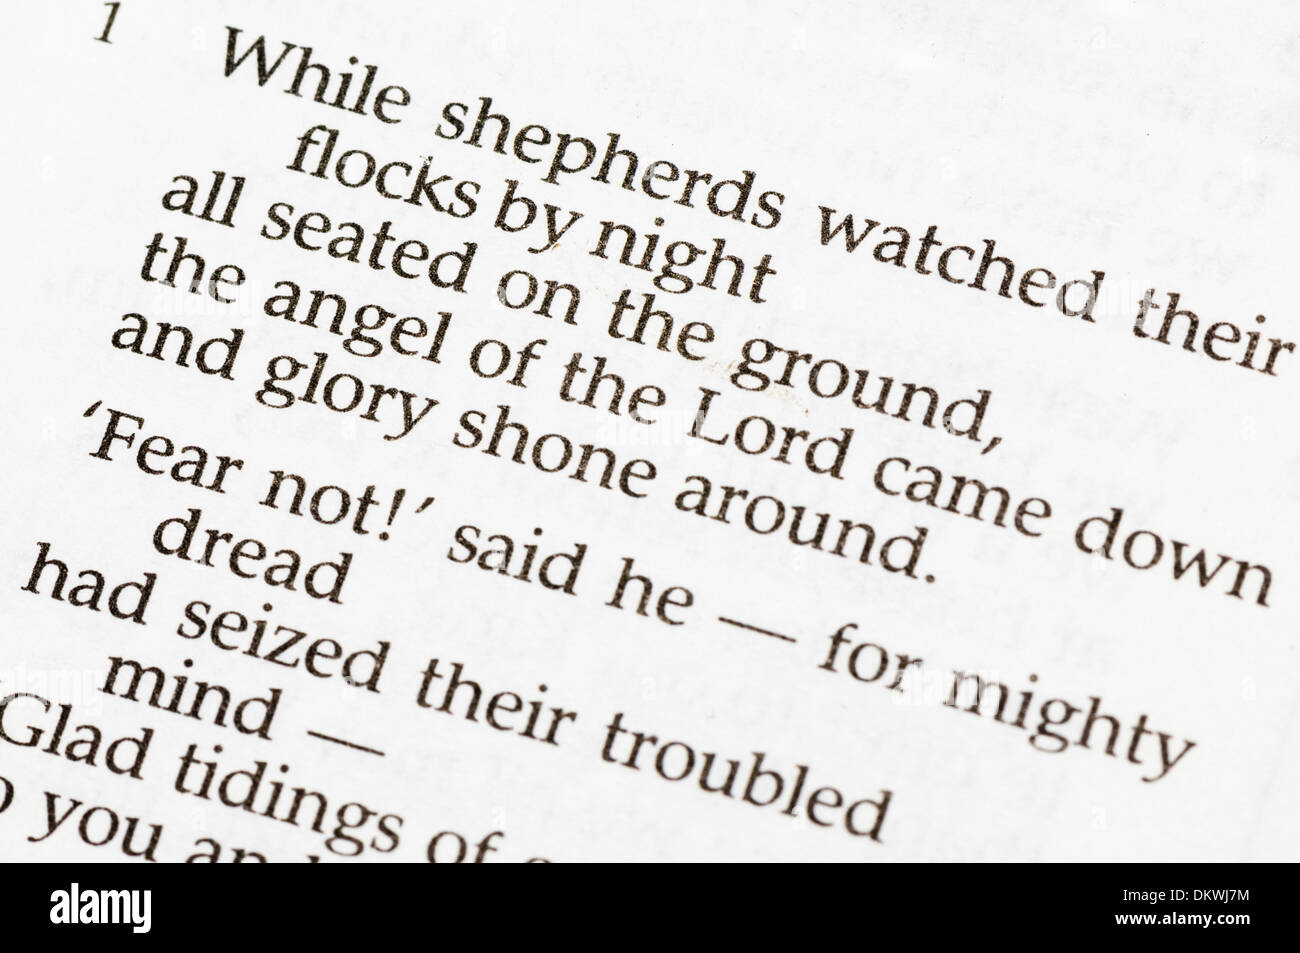 Christmas carol  - 'While Shepherds Watched Their Flocks By Night' - Stock Image